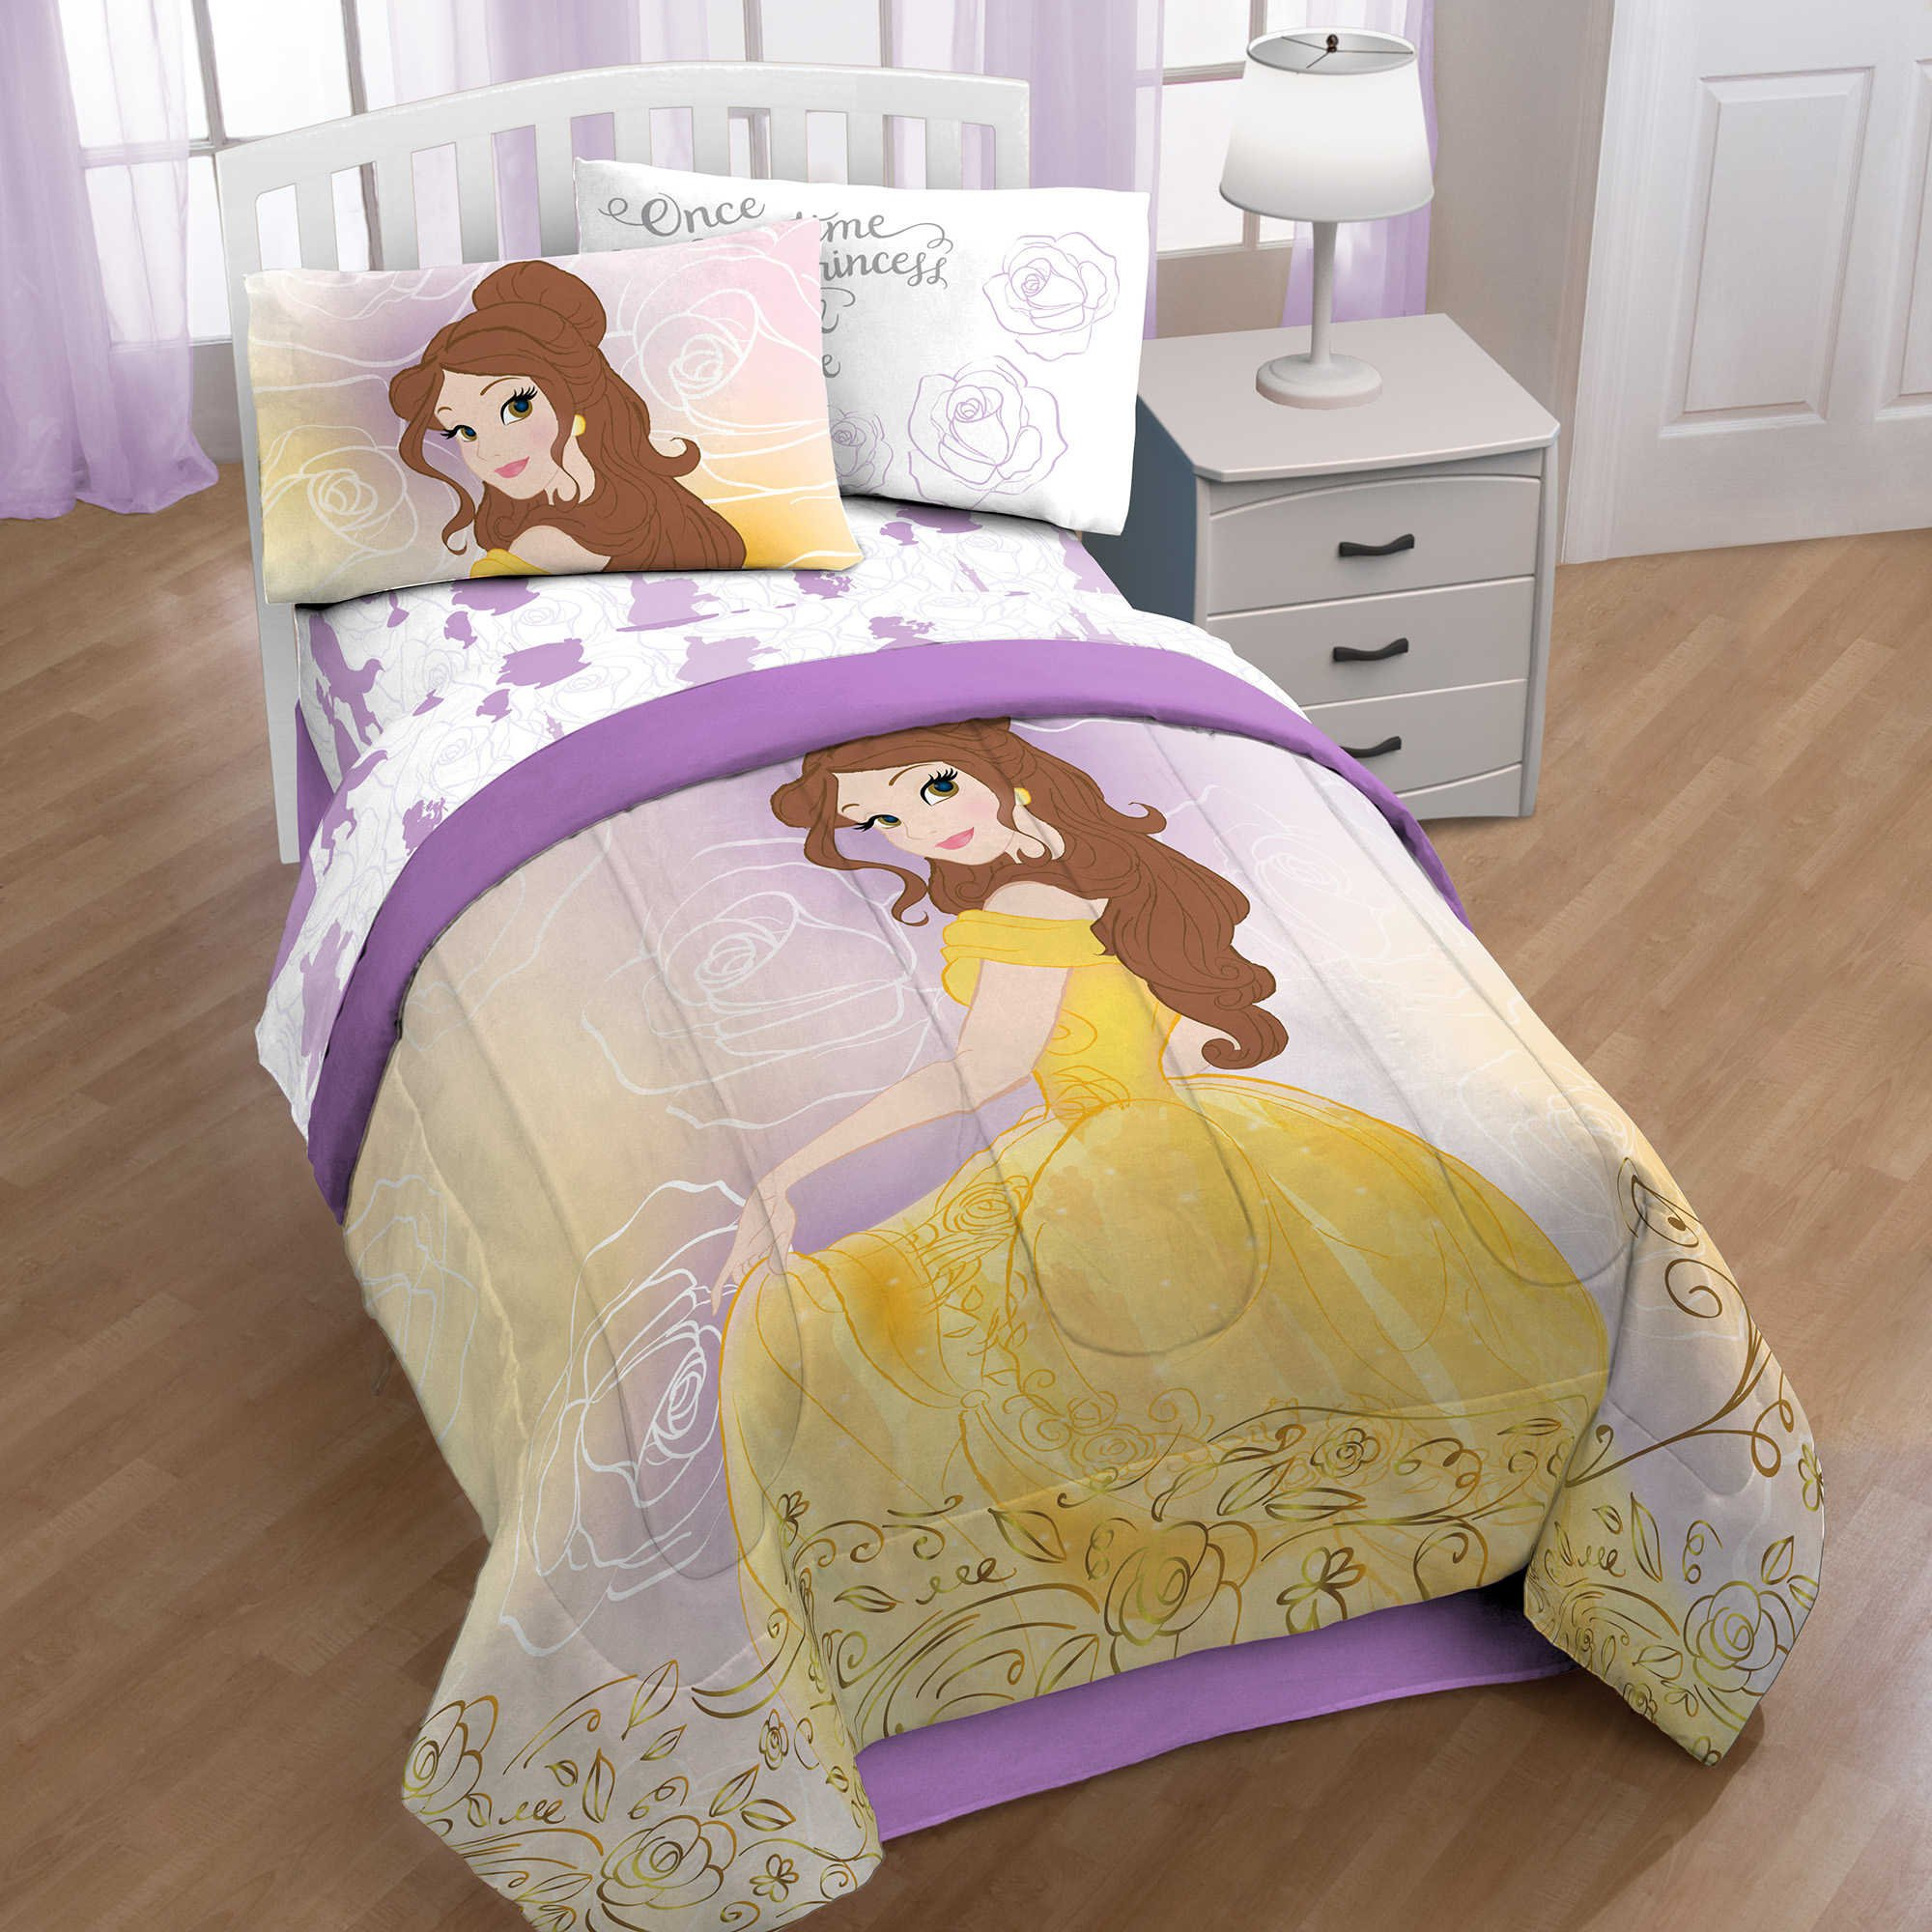 Disney Beauty And The Beast Belle En Rose Bedding Set Comforter and Sheet Set (Full Size)